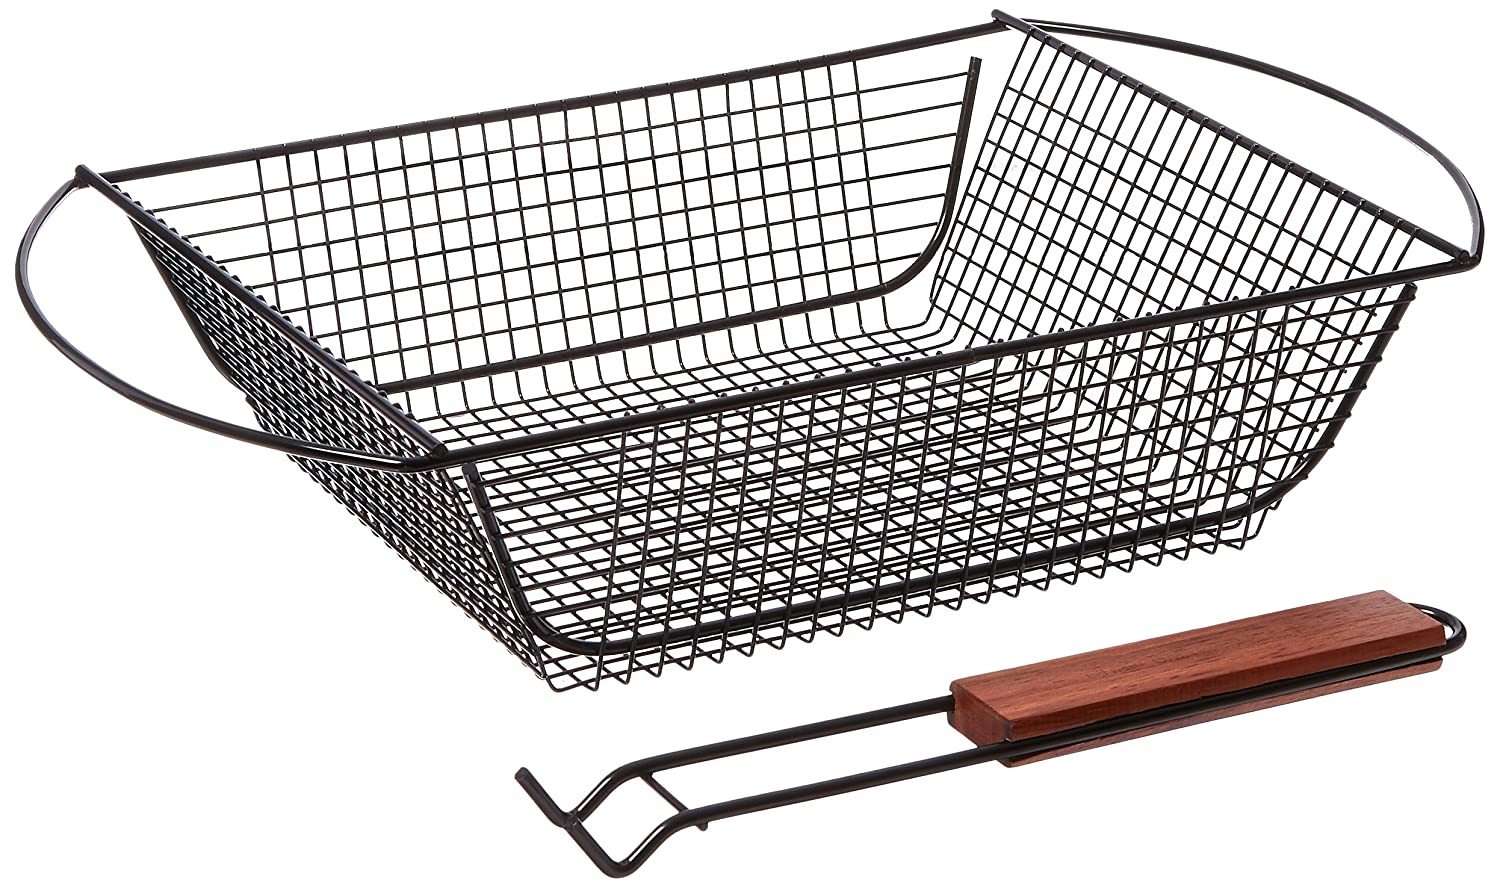 Charcoal Companion CC3017 Non-Stick Shaker Basket with Removable Handle